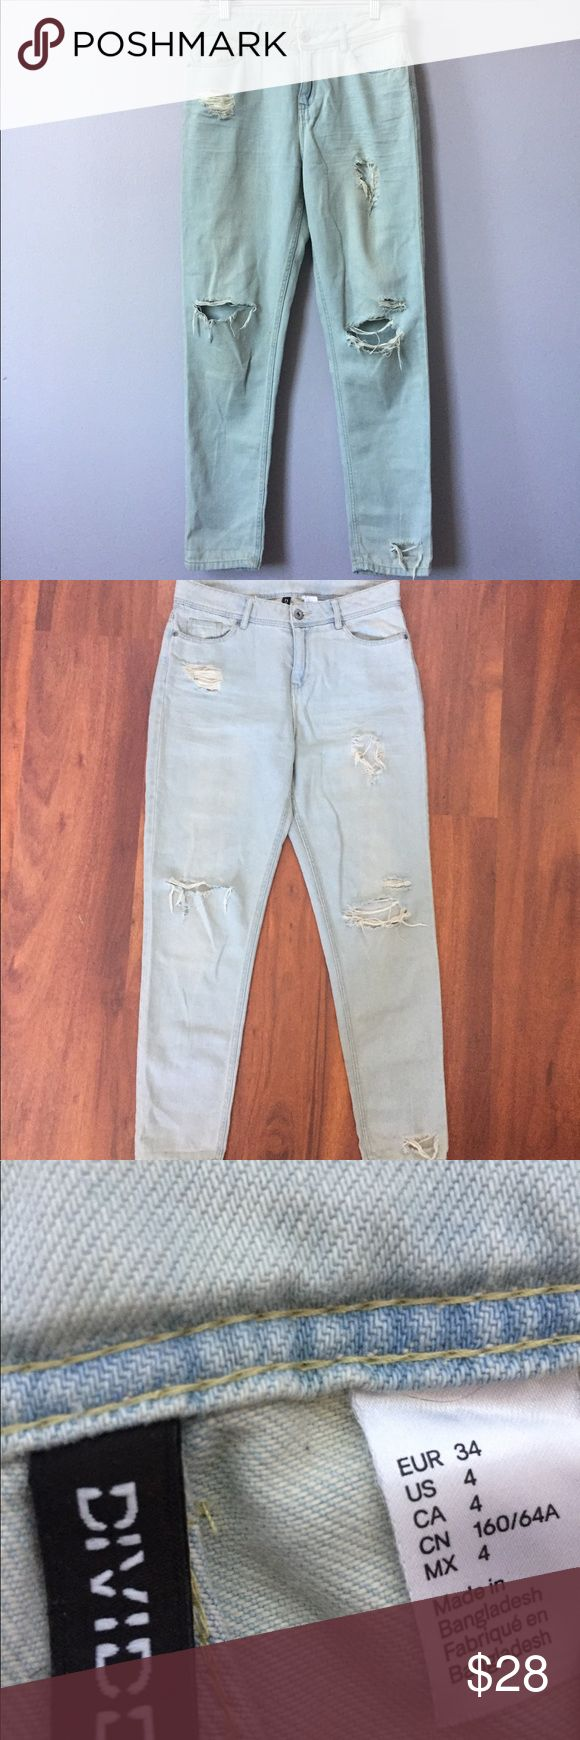 H&m denim high waist distressed straight leg jeans • brand: h&m • size: 4 • color: blue  • style: denim high waisted boyfriend straight leg jeans. These were quite pricey when I got them. Excellent condition, worn just twice. They're super comfortable and soft to the skin. These are the type of denims built to last. On the high end of h&m denims.   Questions are welcomed :) comes from a pet free and smoke free home. All items are washed before sending. Bundle with 3 items for 15% off. H&M…